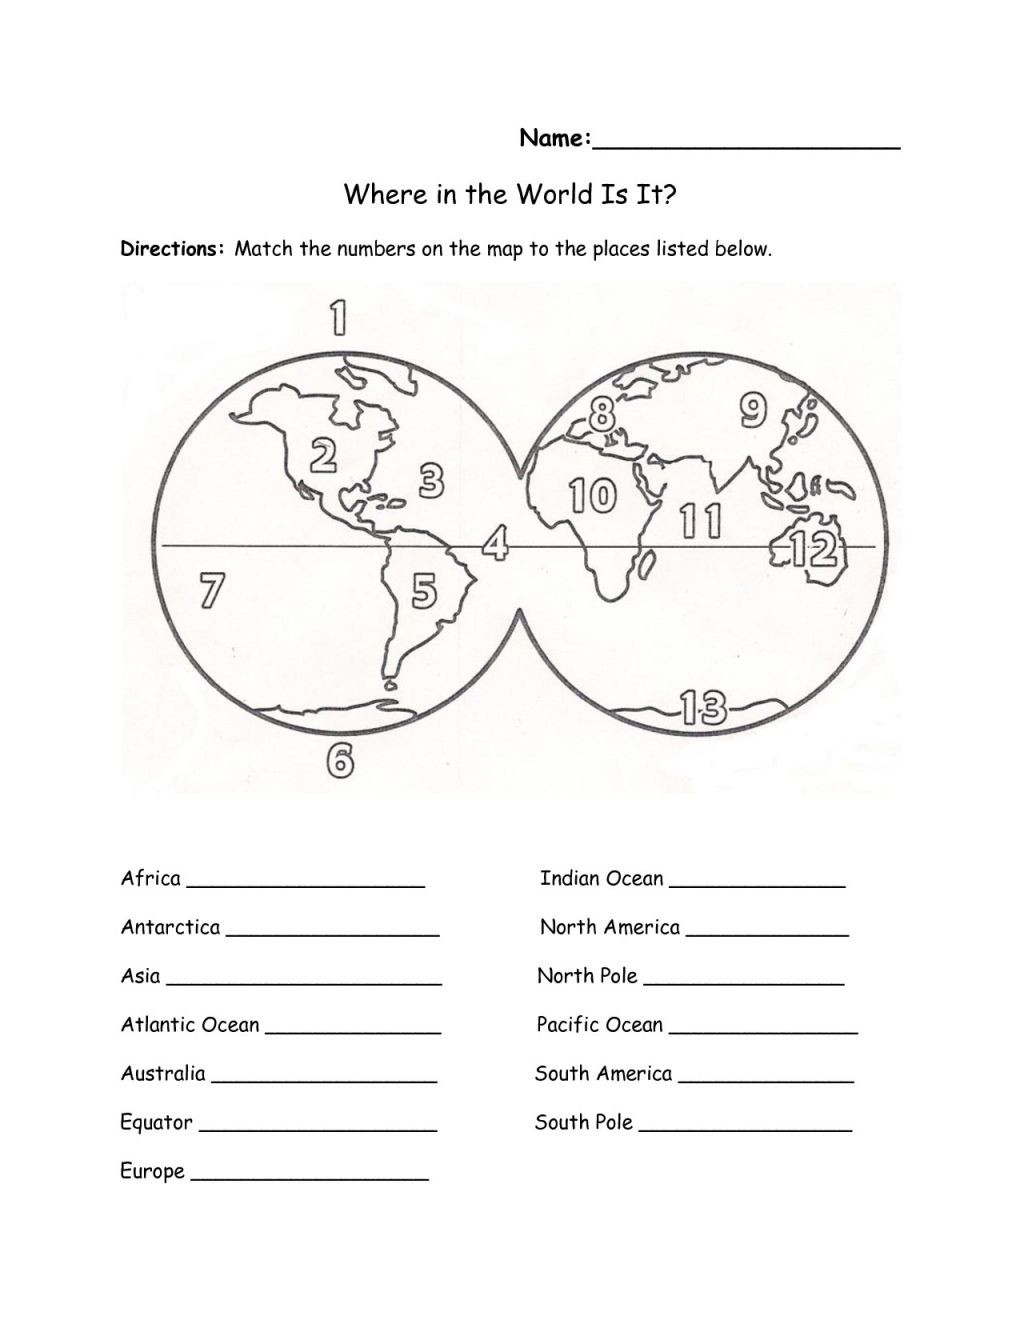 Printable Map To Label Continents And Oceans Fresh Fresh Continents And Oceans Worksheet Ra93 – Documentaries For Change